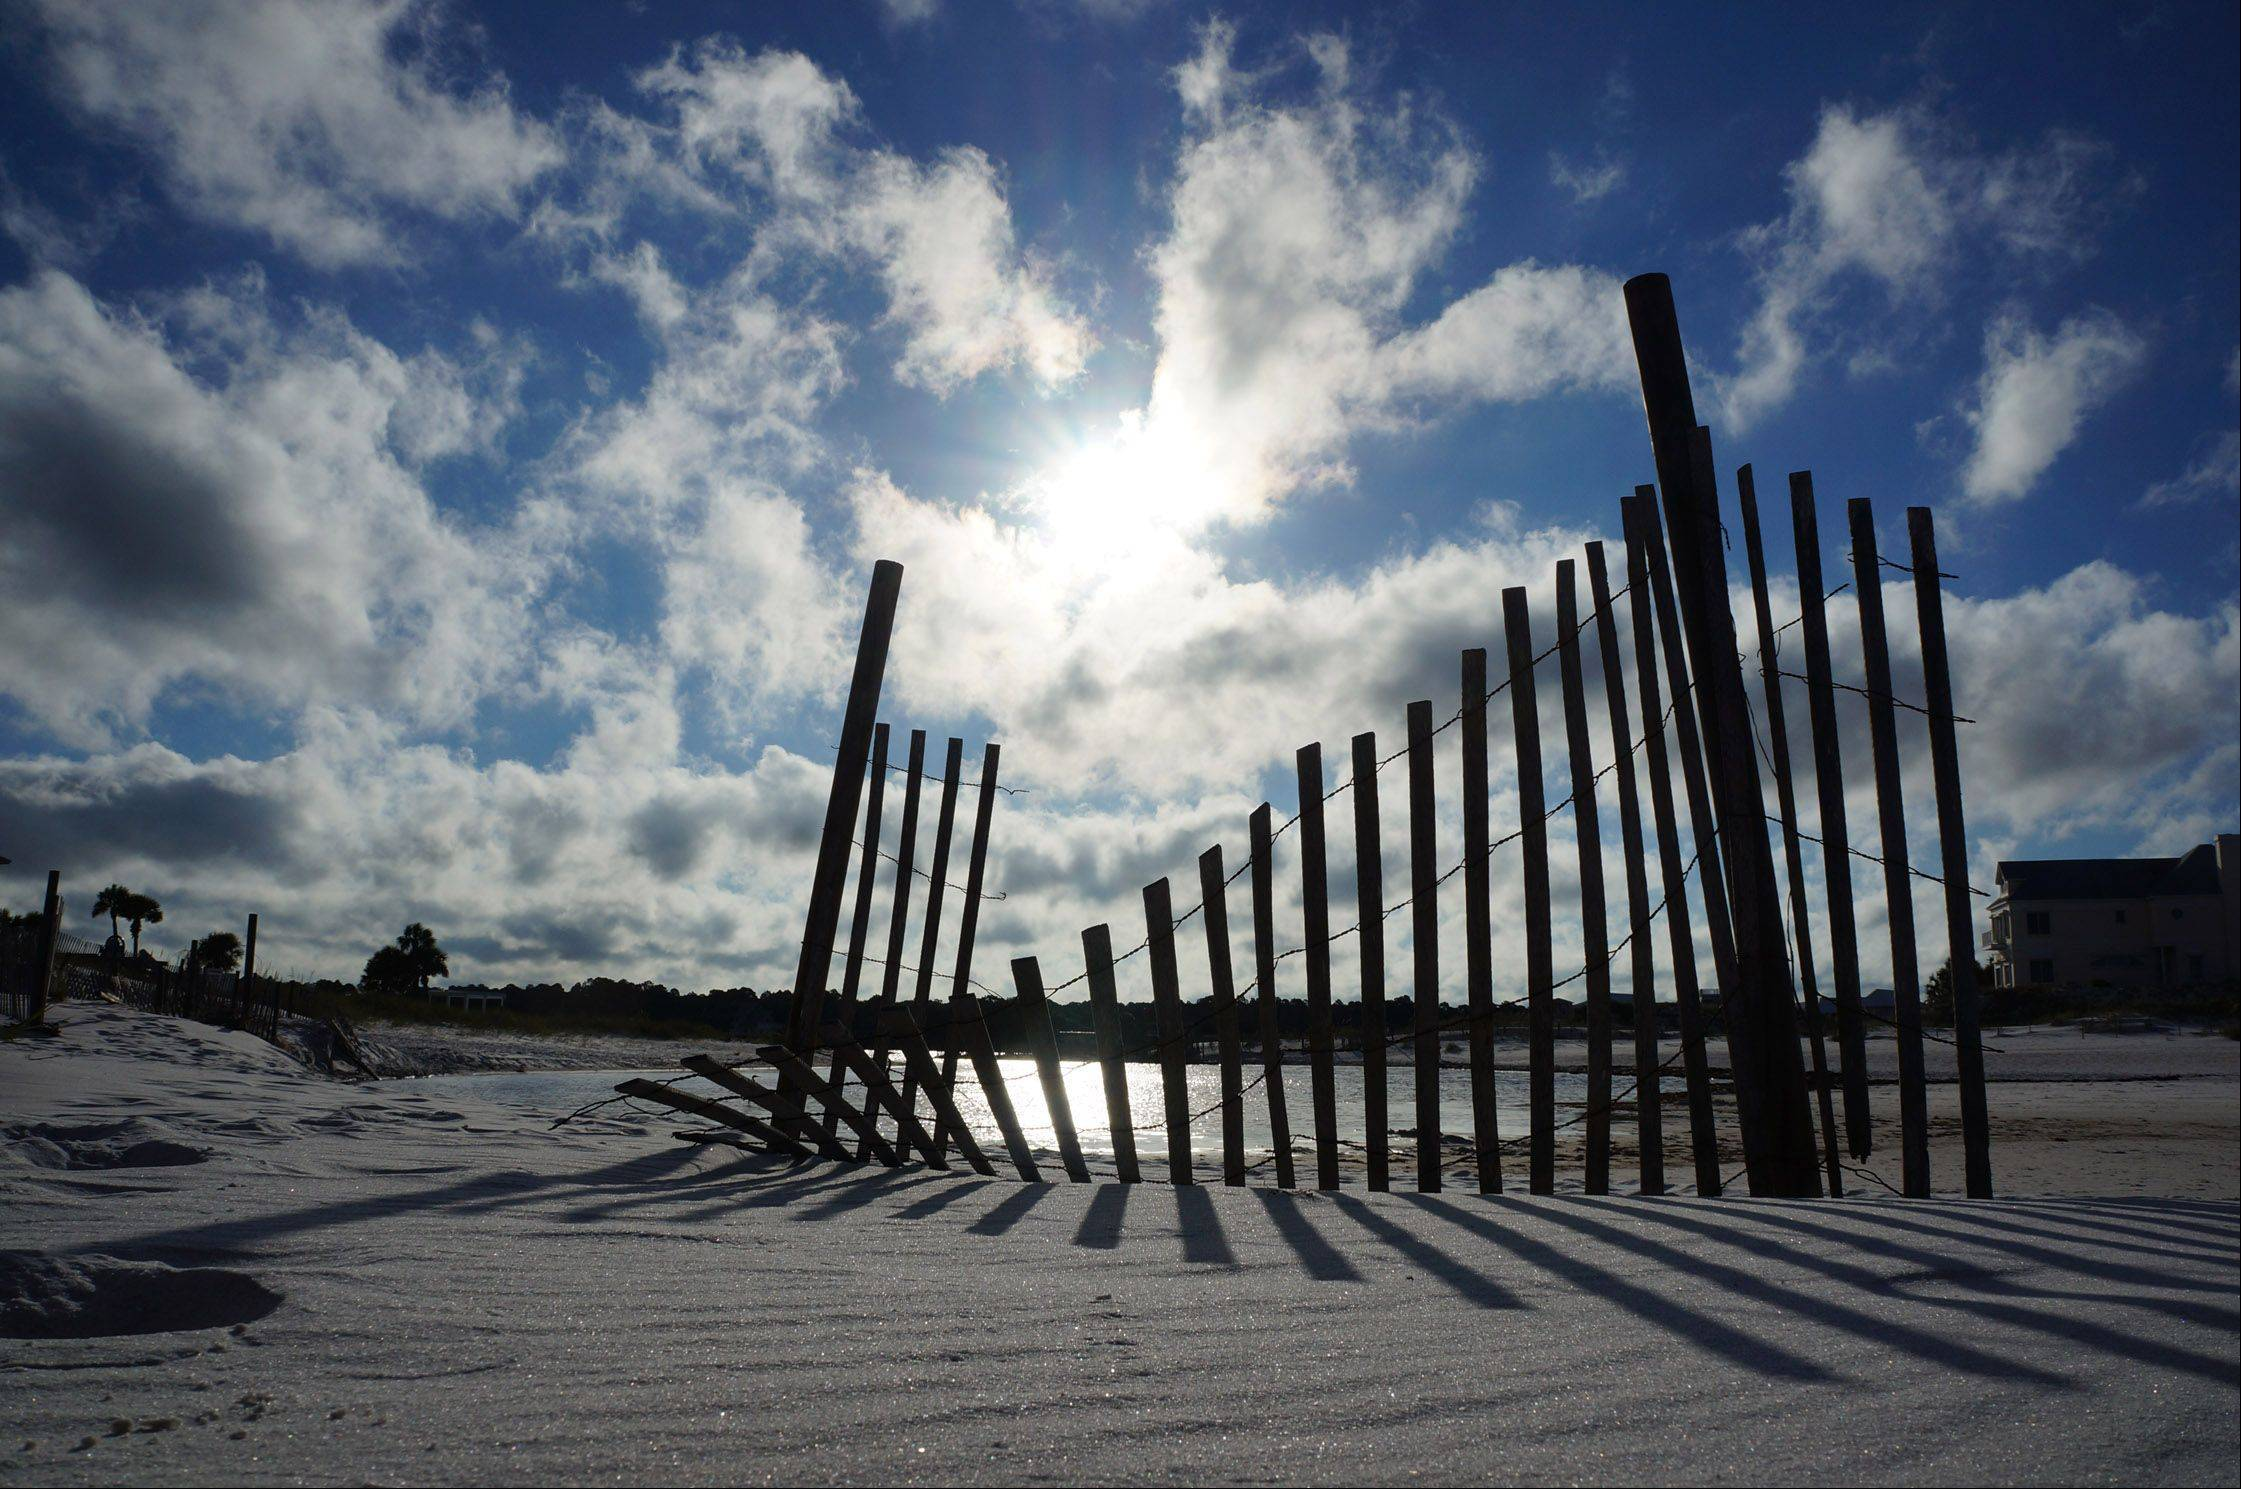 A fence stands in the sand near a lake in Seaside, Florida. The lake in the background was connected to the ocean and is called a dune lake.